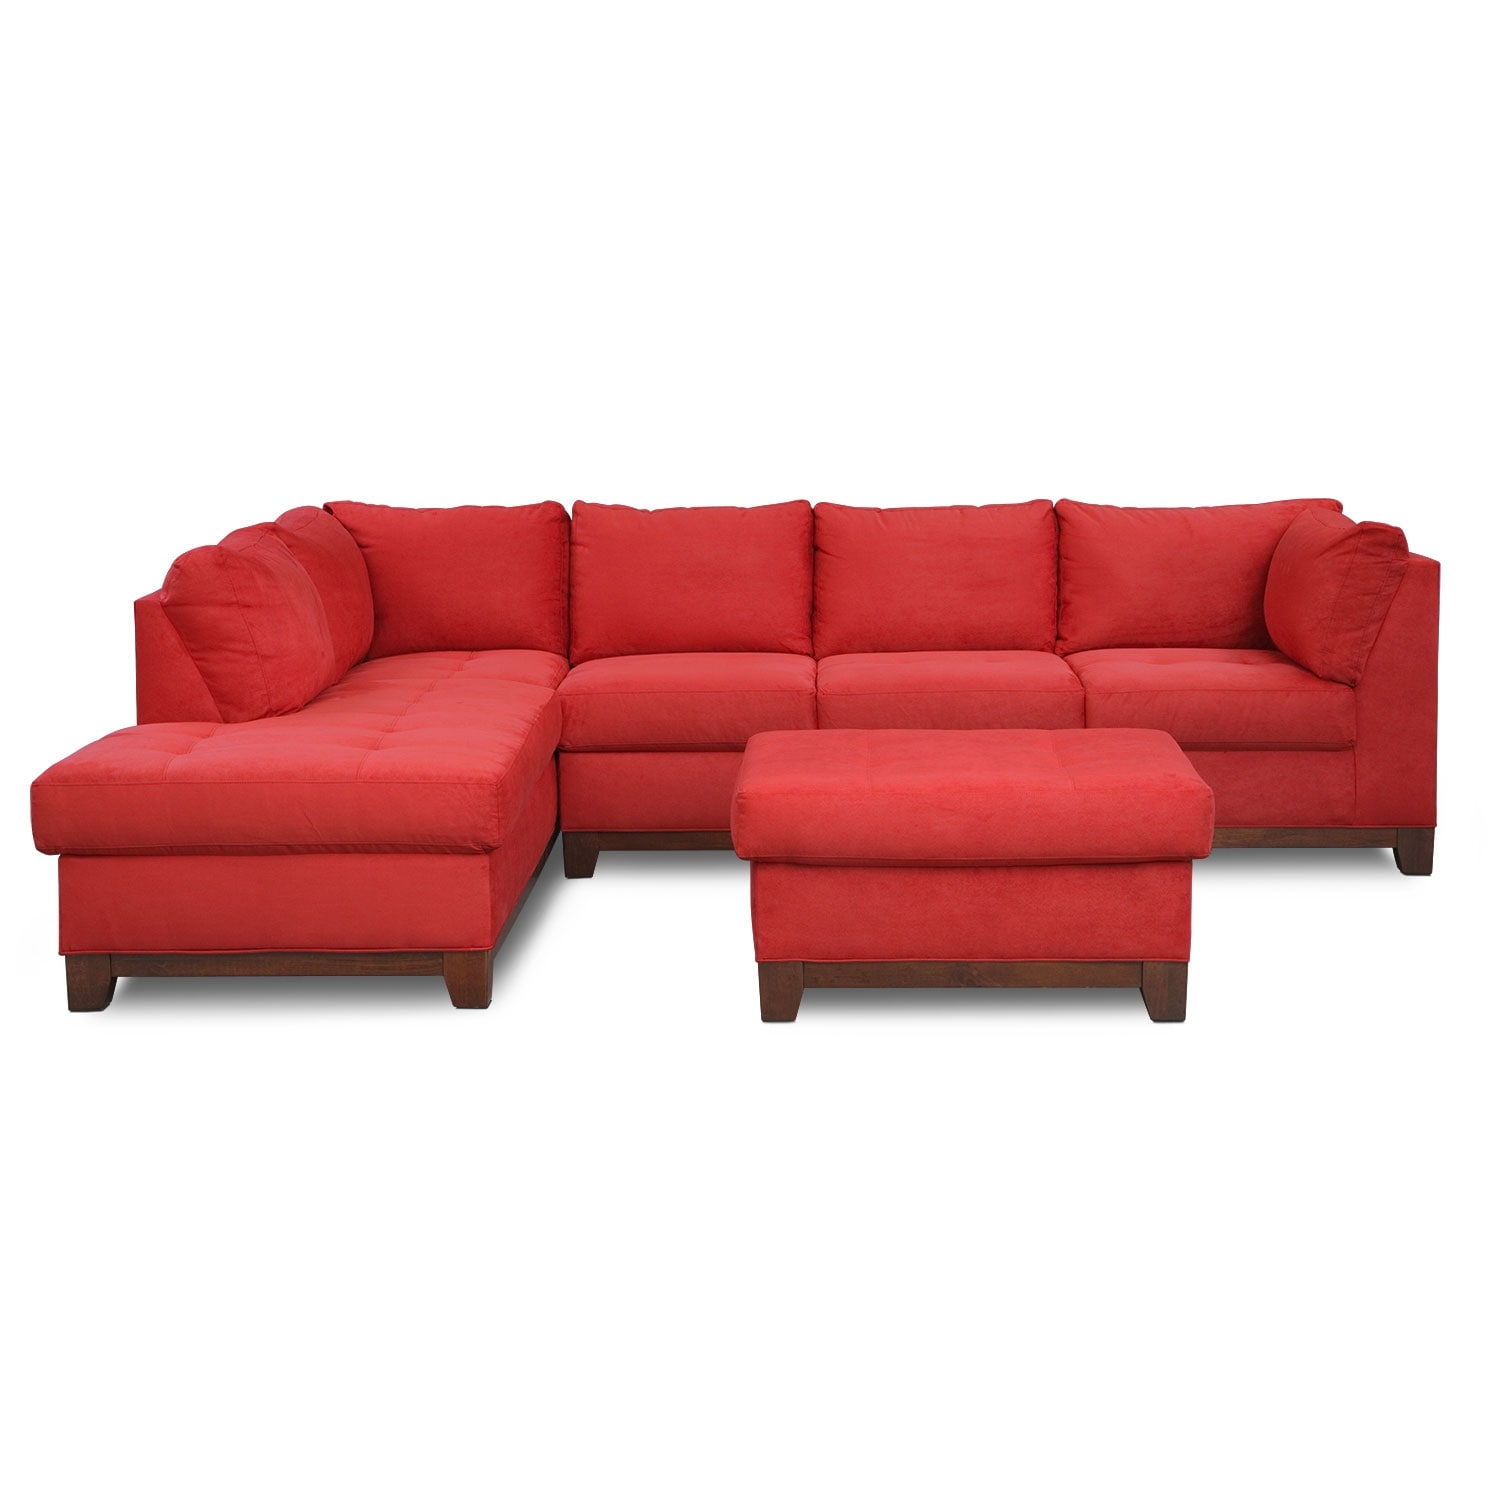 Soho 2 piece sectional with left facing chaise and ottoman for 2 piece sectional with chaise